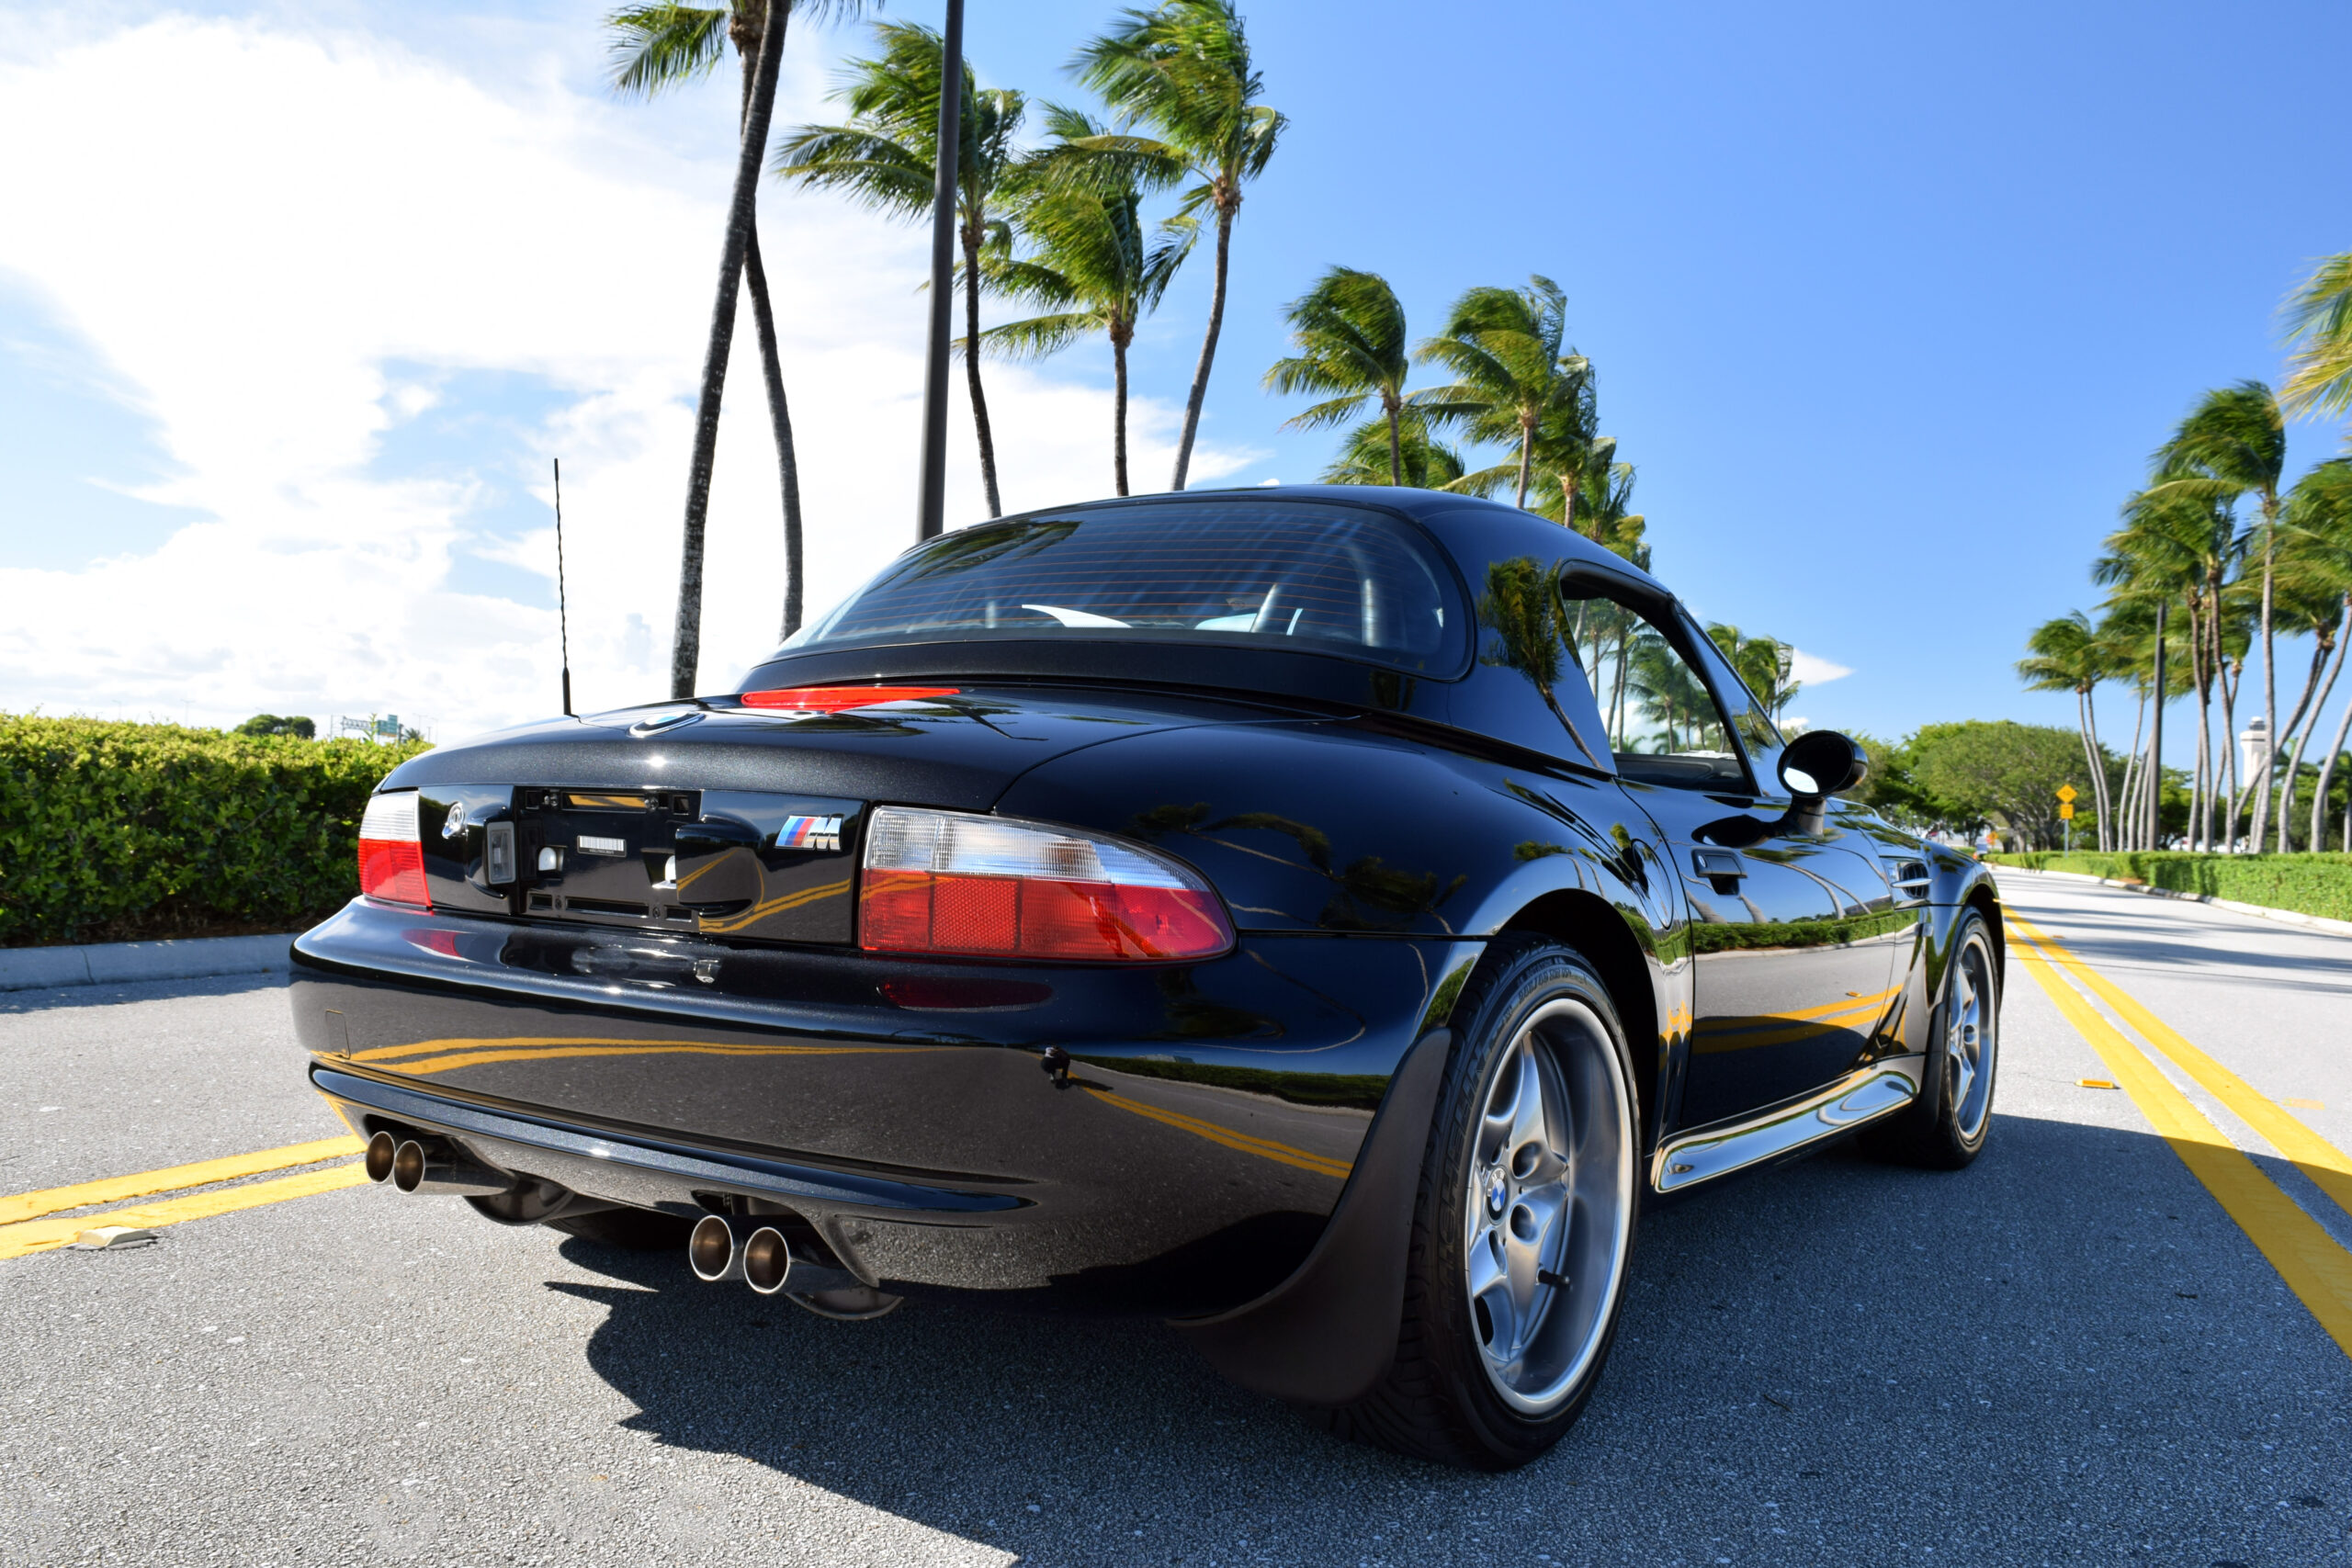 2001 BMW Z3M Roadster, 11K actual miles, S54 Engine, hard top, all original paint, collector grade